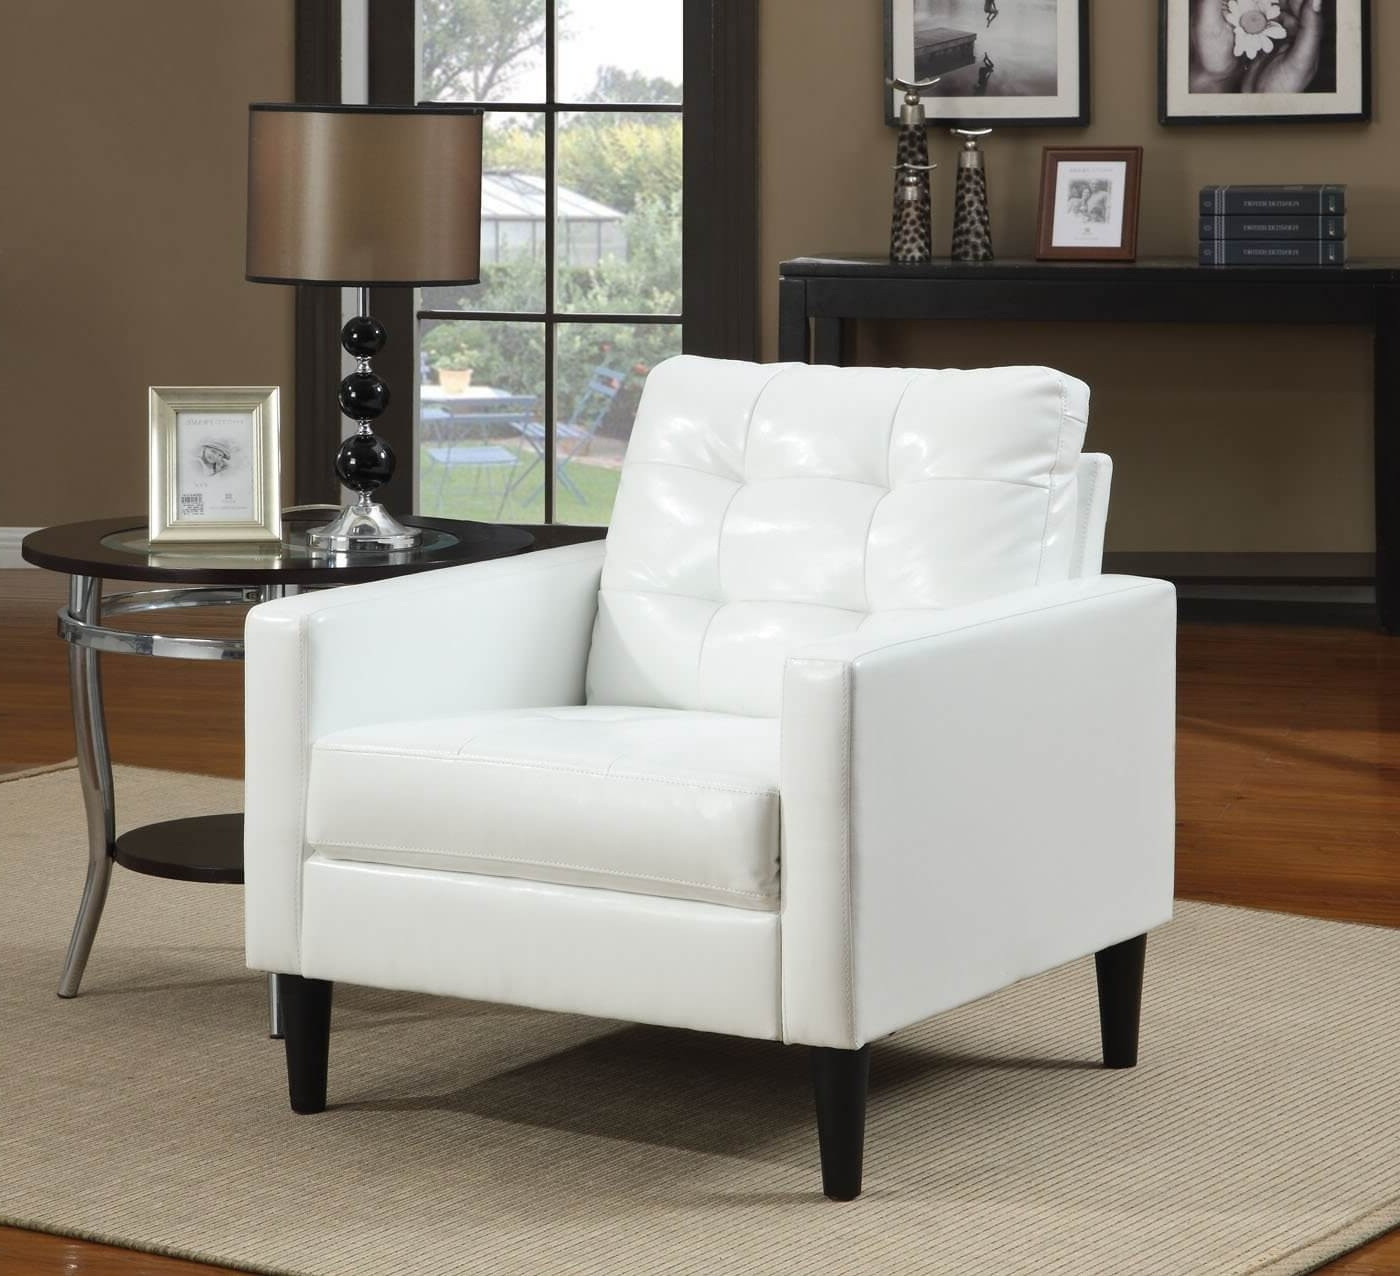 Accent Sofa Chairs Intended For Current 37 White Modern Accent Chairs For The Living Room (View 7 of 20)